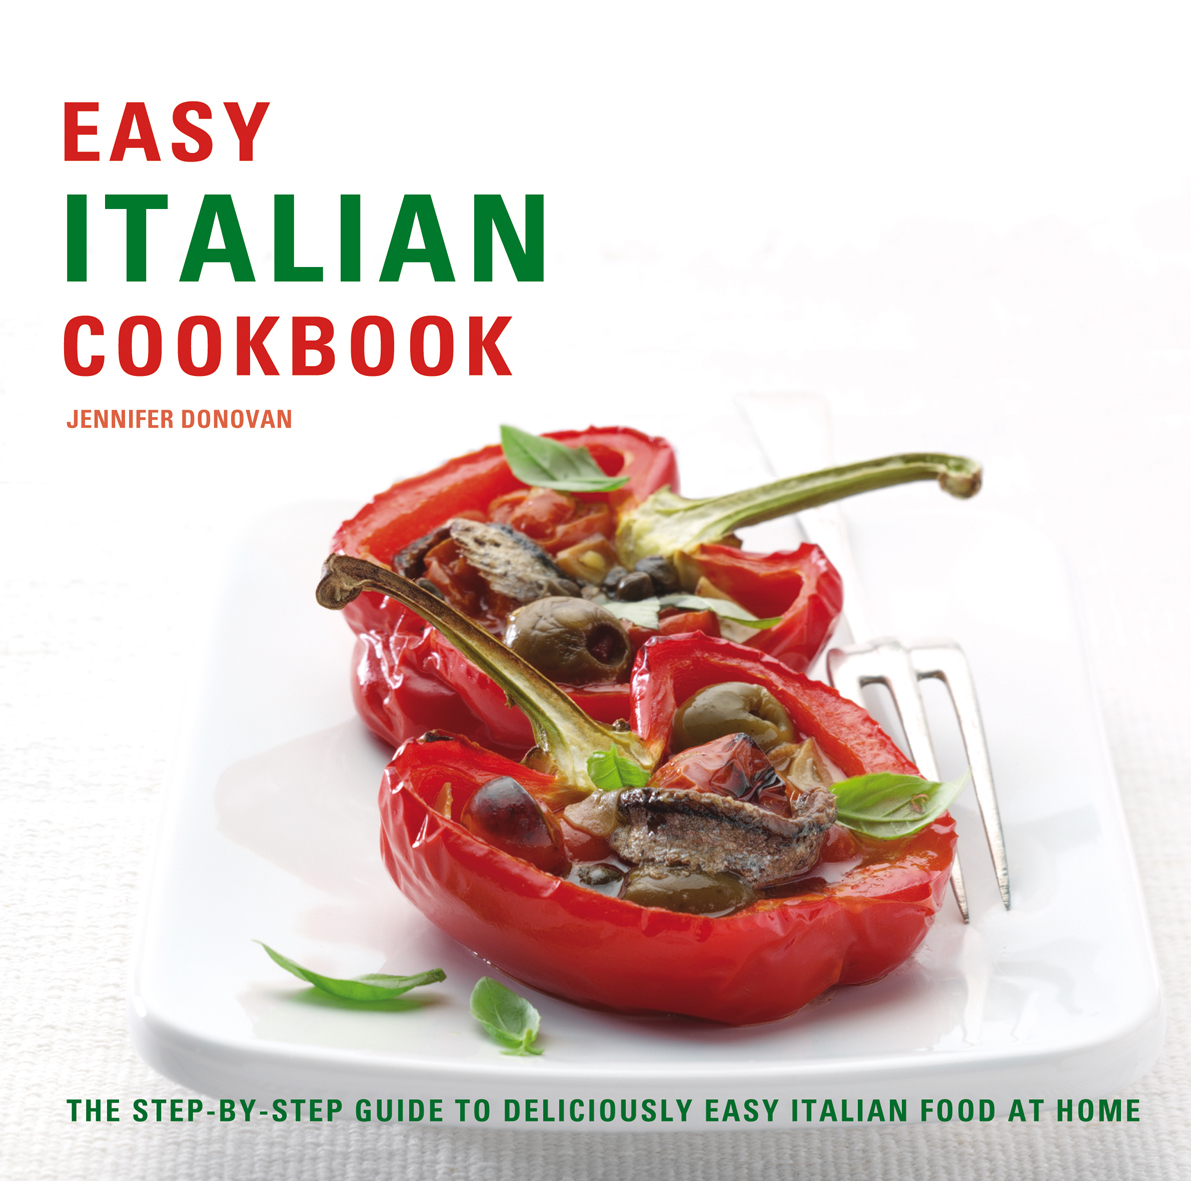 Easy italian cookbook simple recipes nourish the step by step guide to deliciously easy italian food at home forumfinder Images